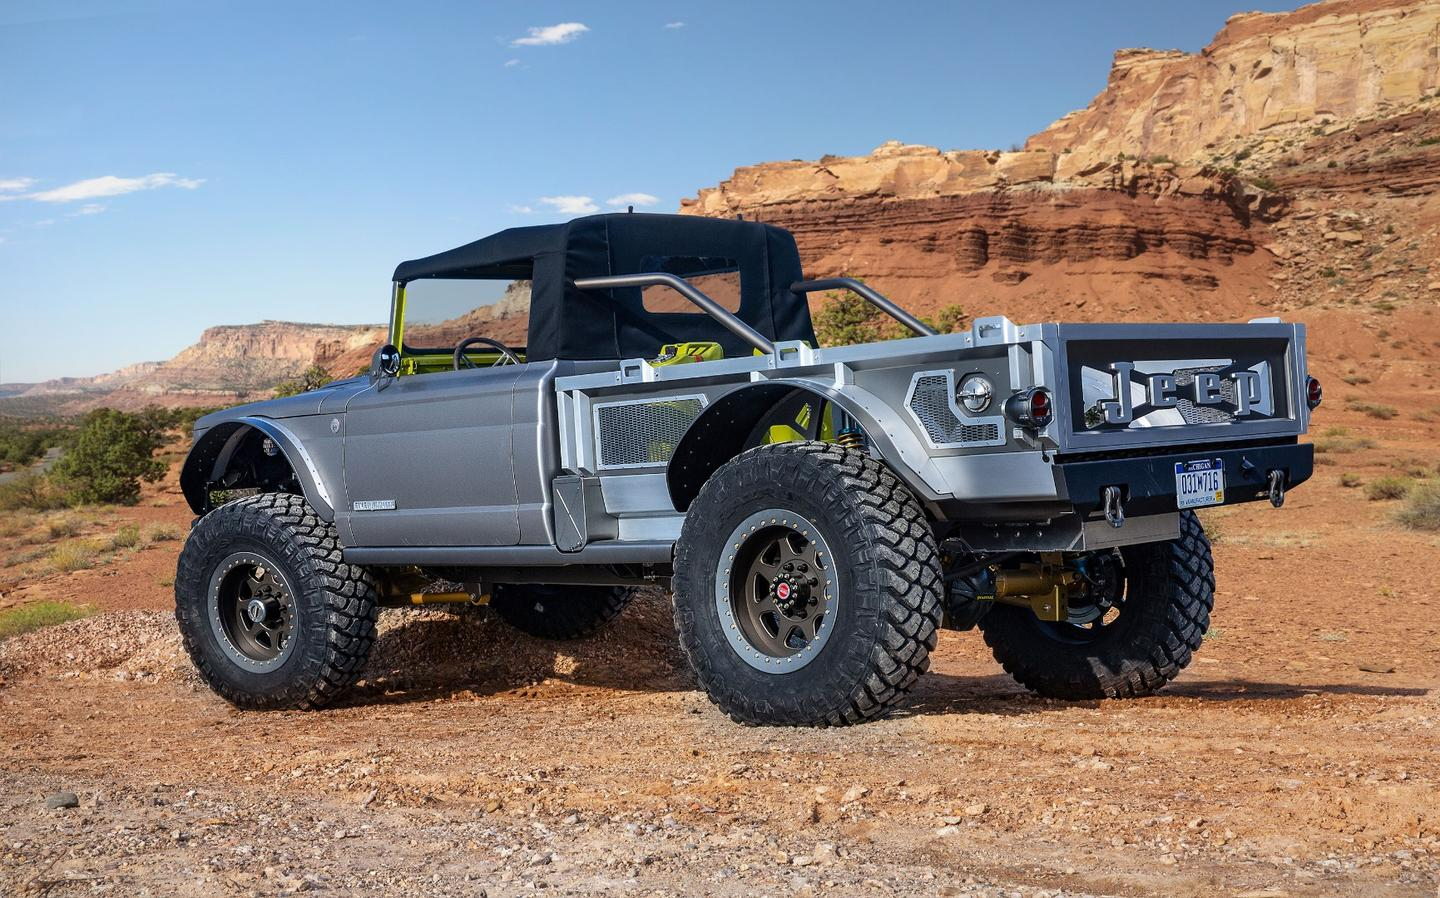 A lowered soft top and a breezy aluminum pickup bed give the M715 Five-Quarter a unique look